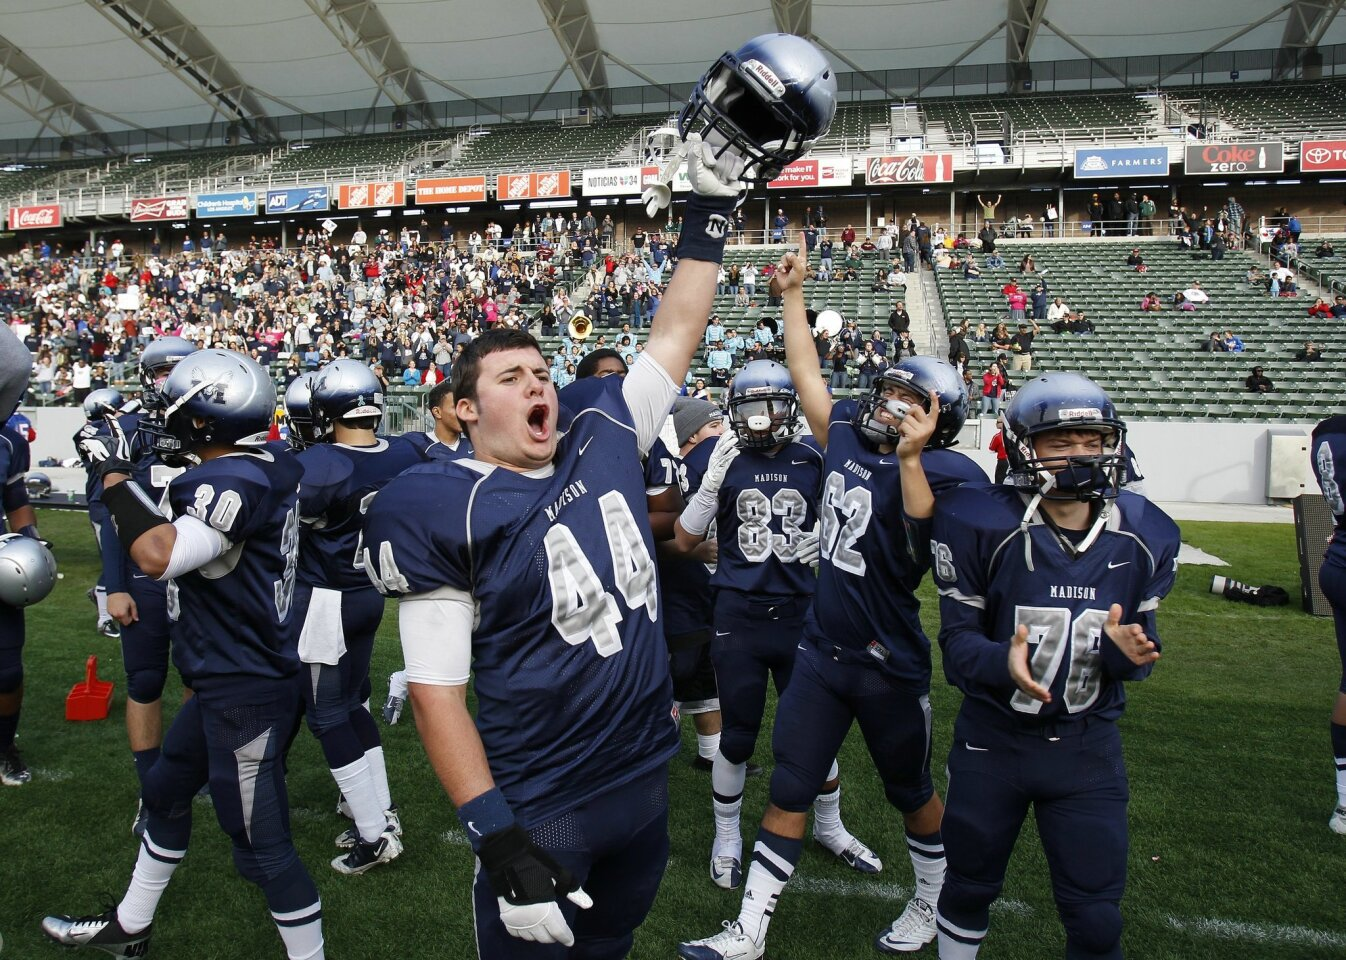 CIF Division III State Championship